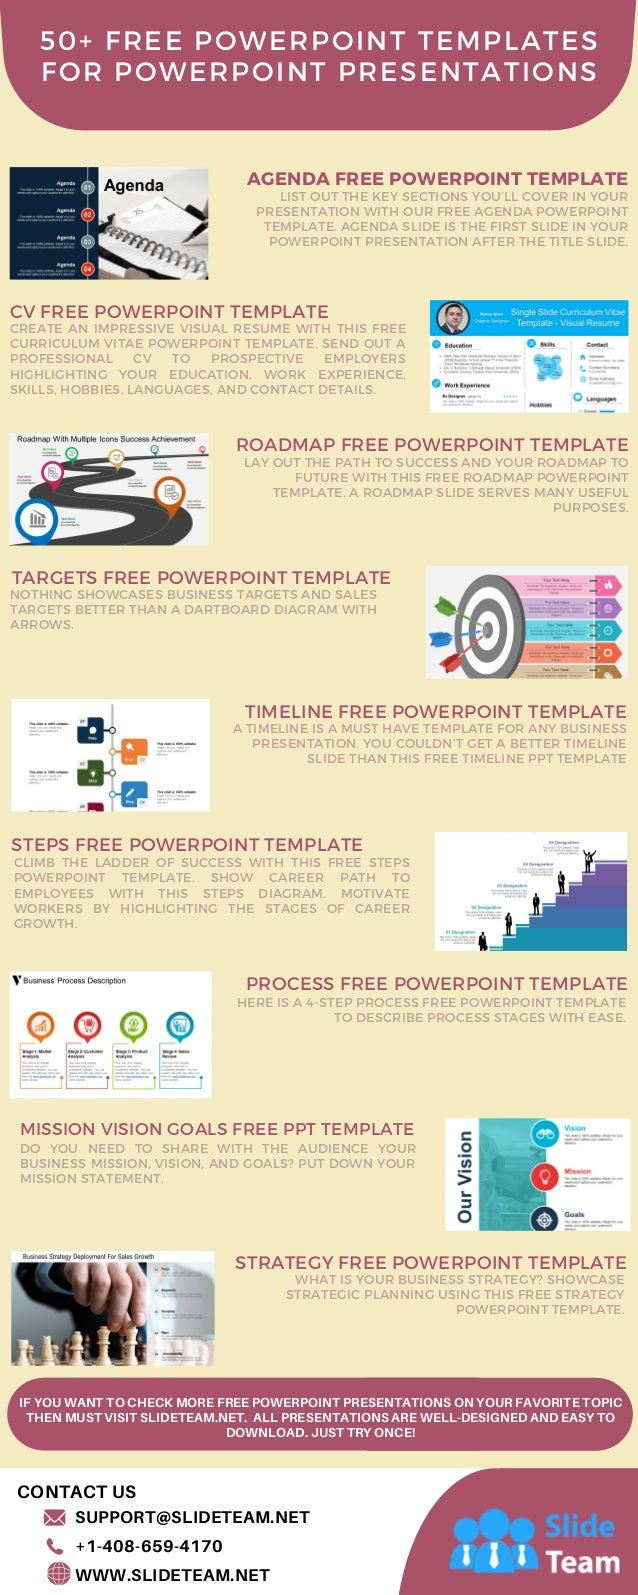 STRATEGY FREE POWERPOINT TEMPLATE WHAT IS YOUR BUSINESS STRATEGY? SHOWCASE STRATEGIC PLANNING USING THIS FREE STRATEGY POW...